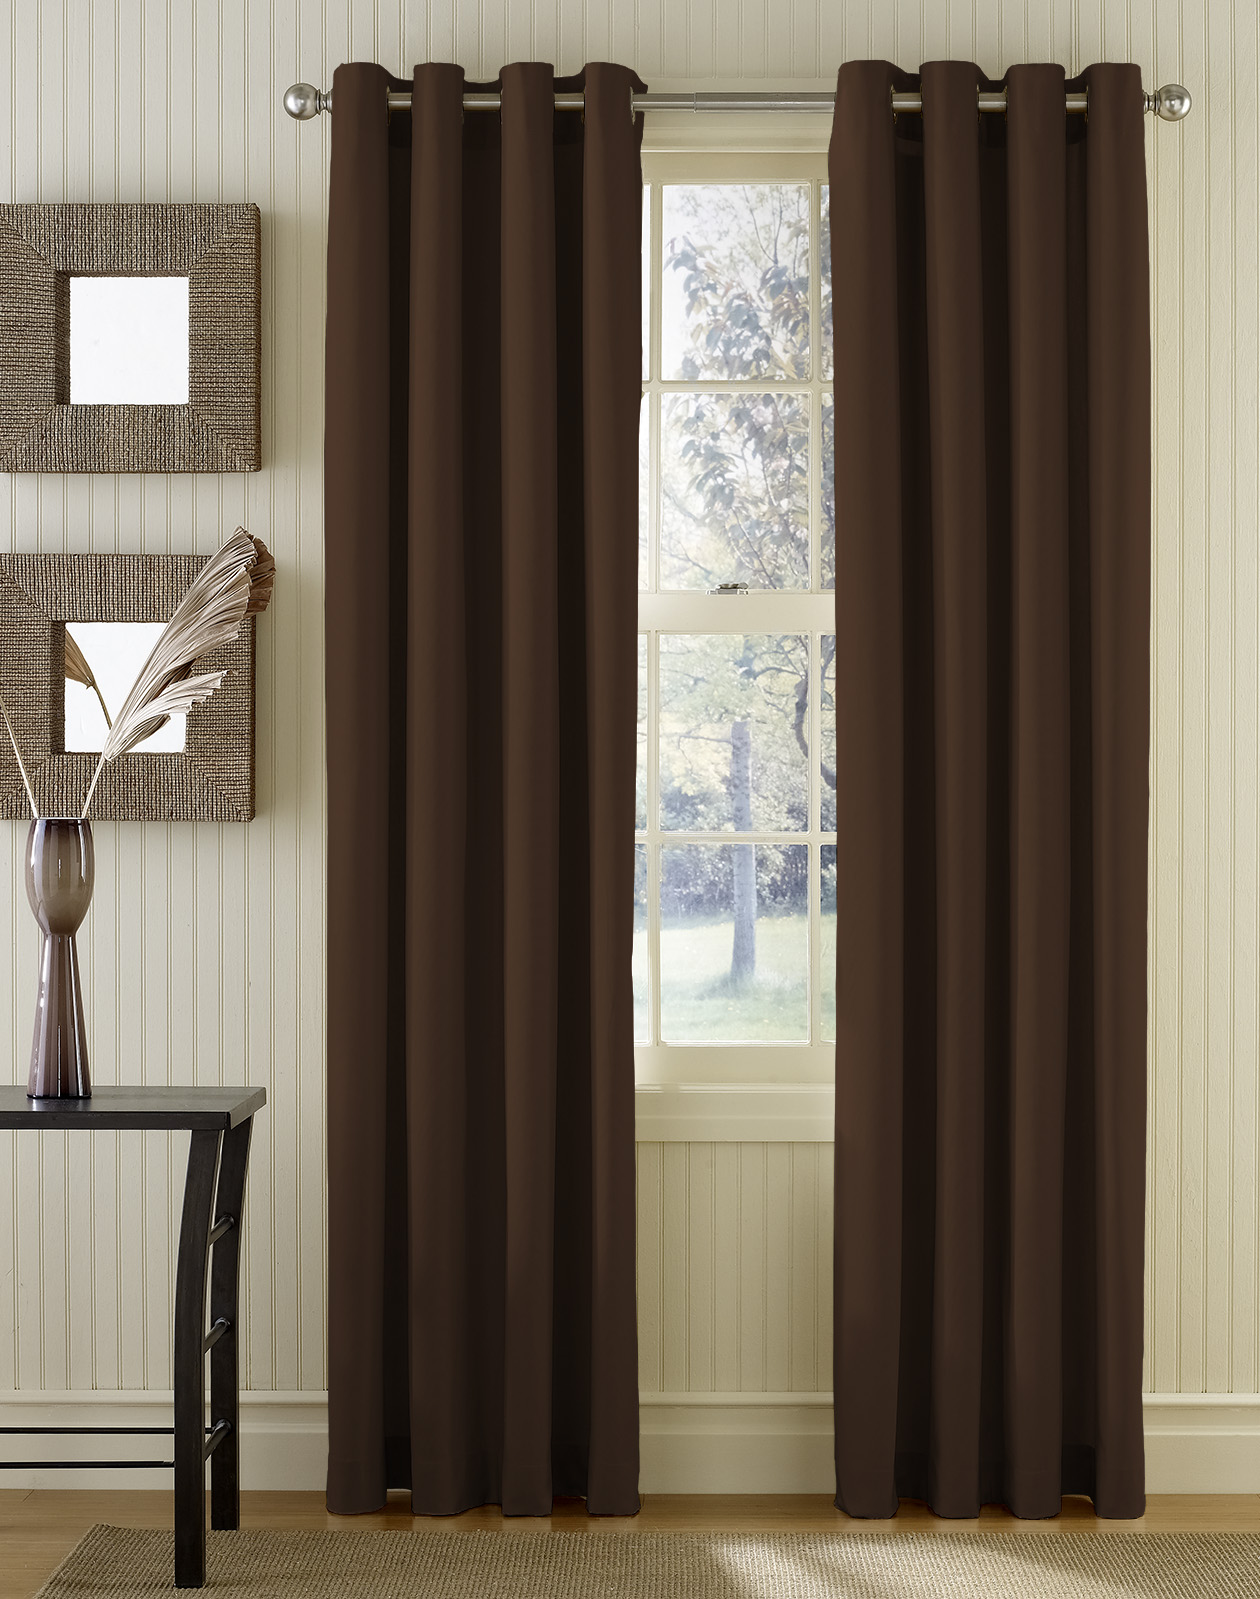 Curtain interior design what is minimalist curtain design for Home drapes and curtains